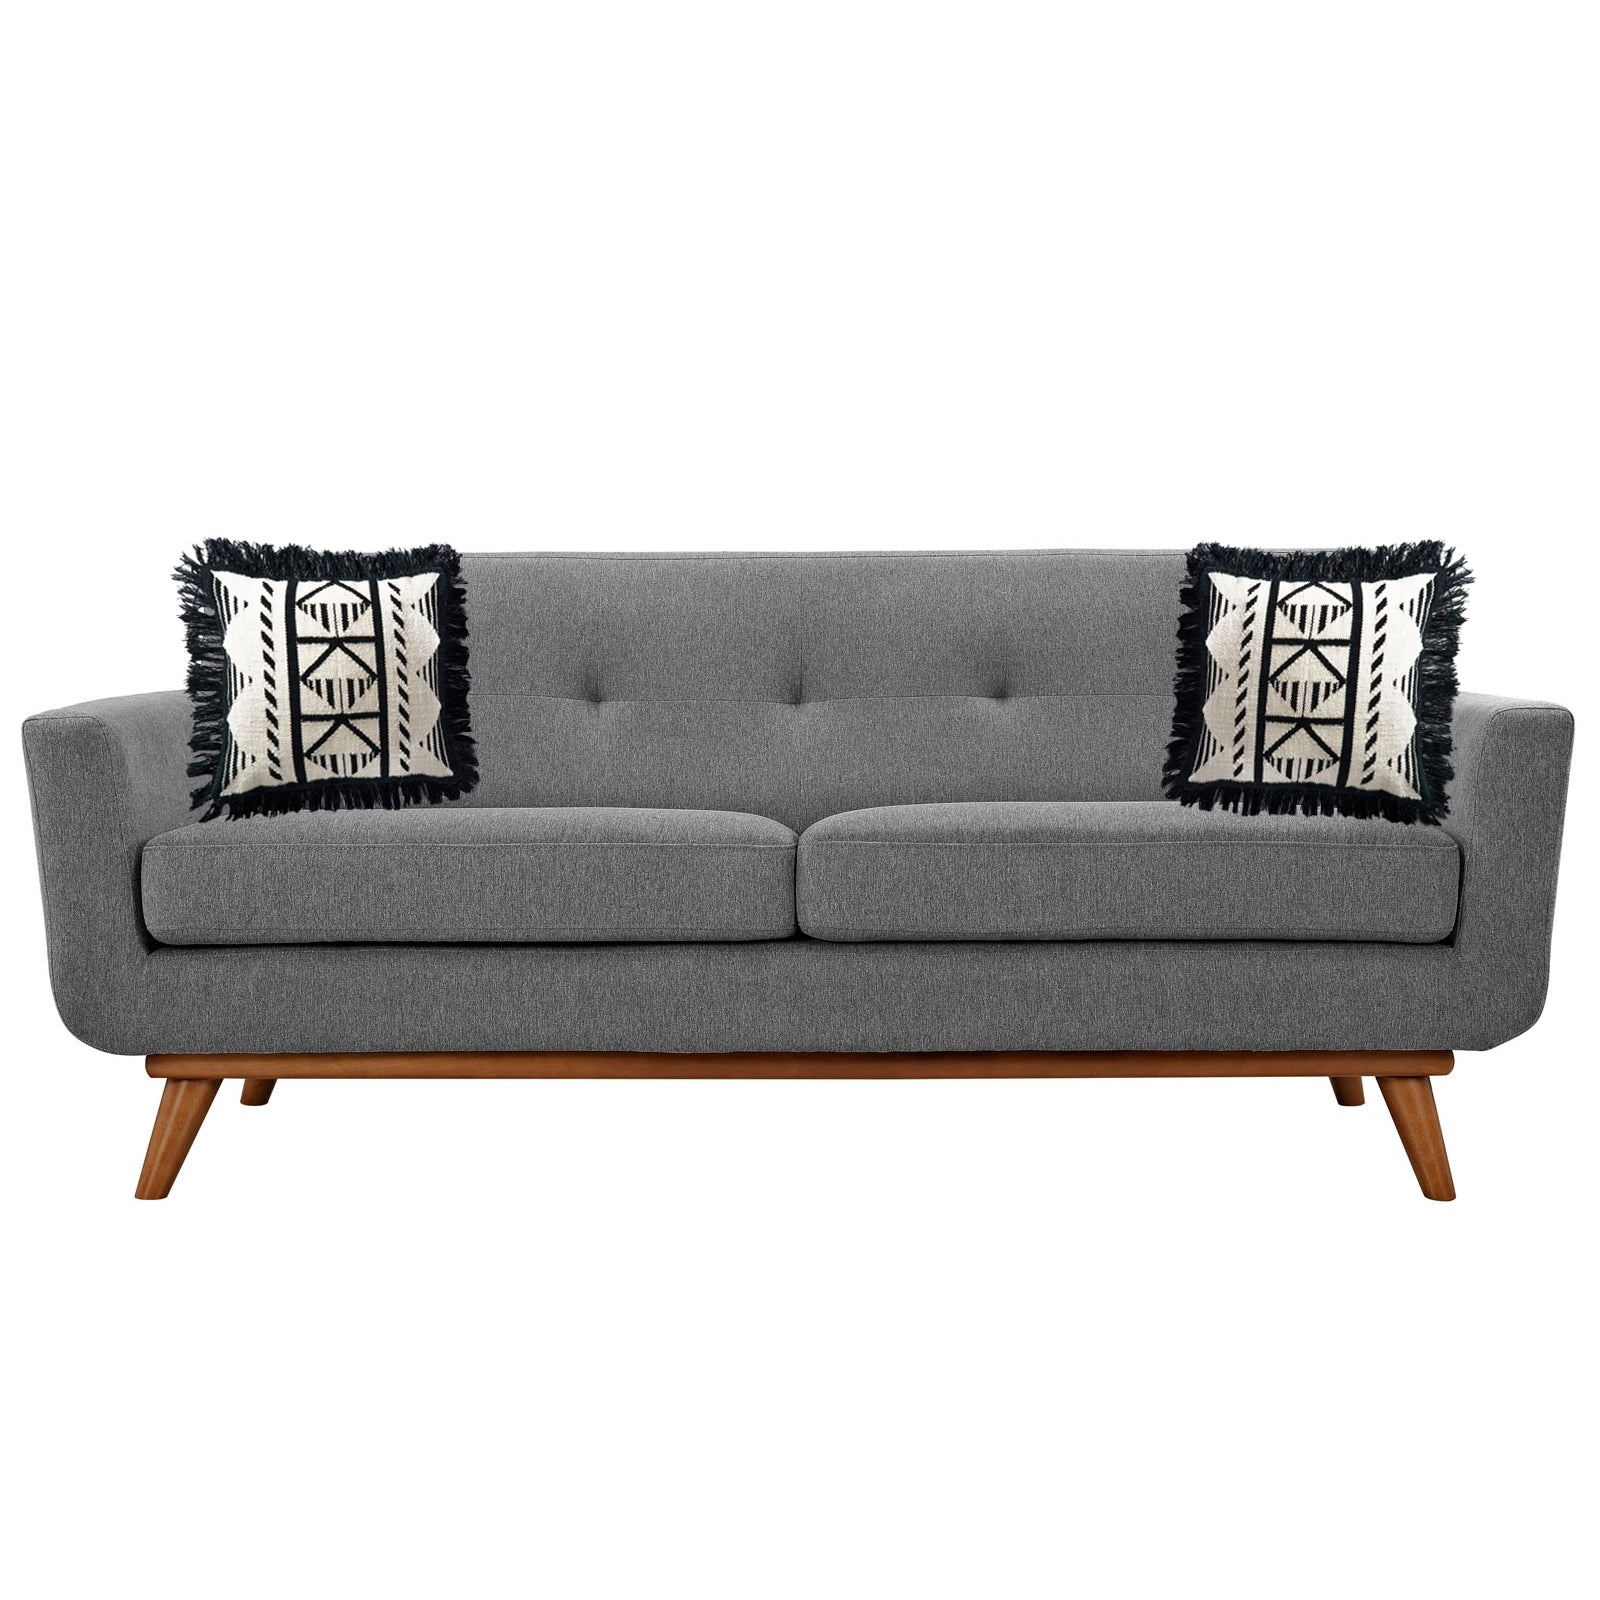 Superior Medium Gray Mid Century Modern Loveseat Sofa With Pillows